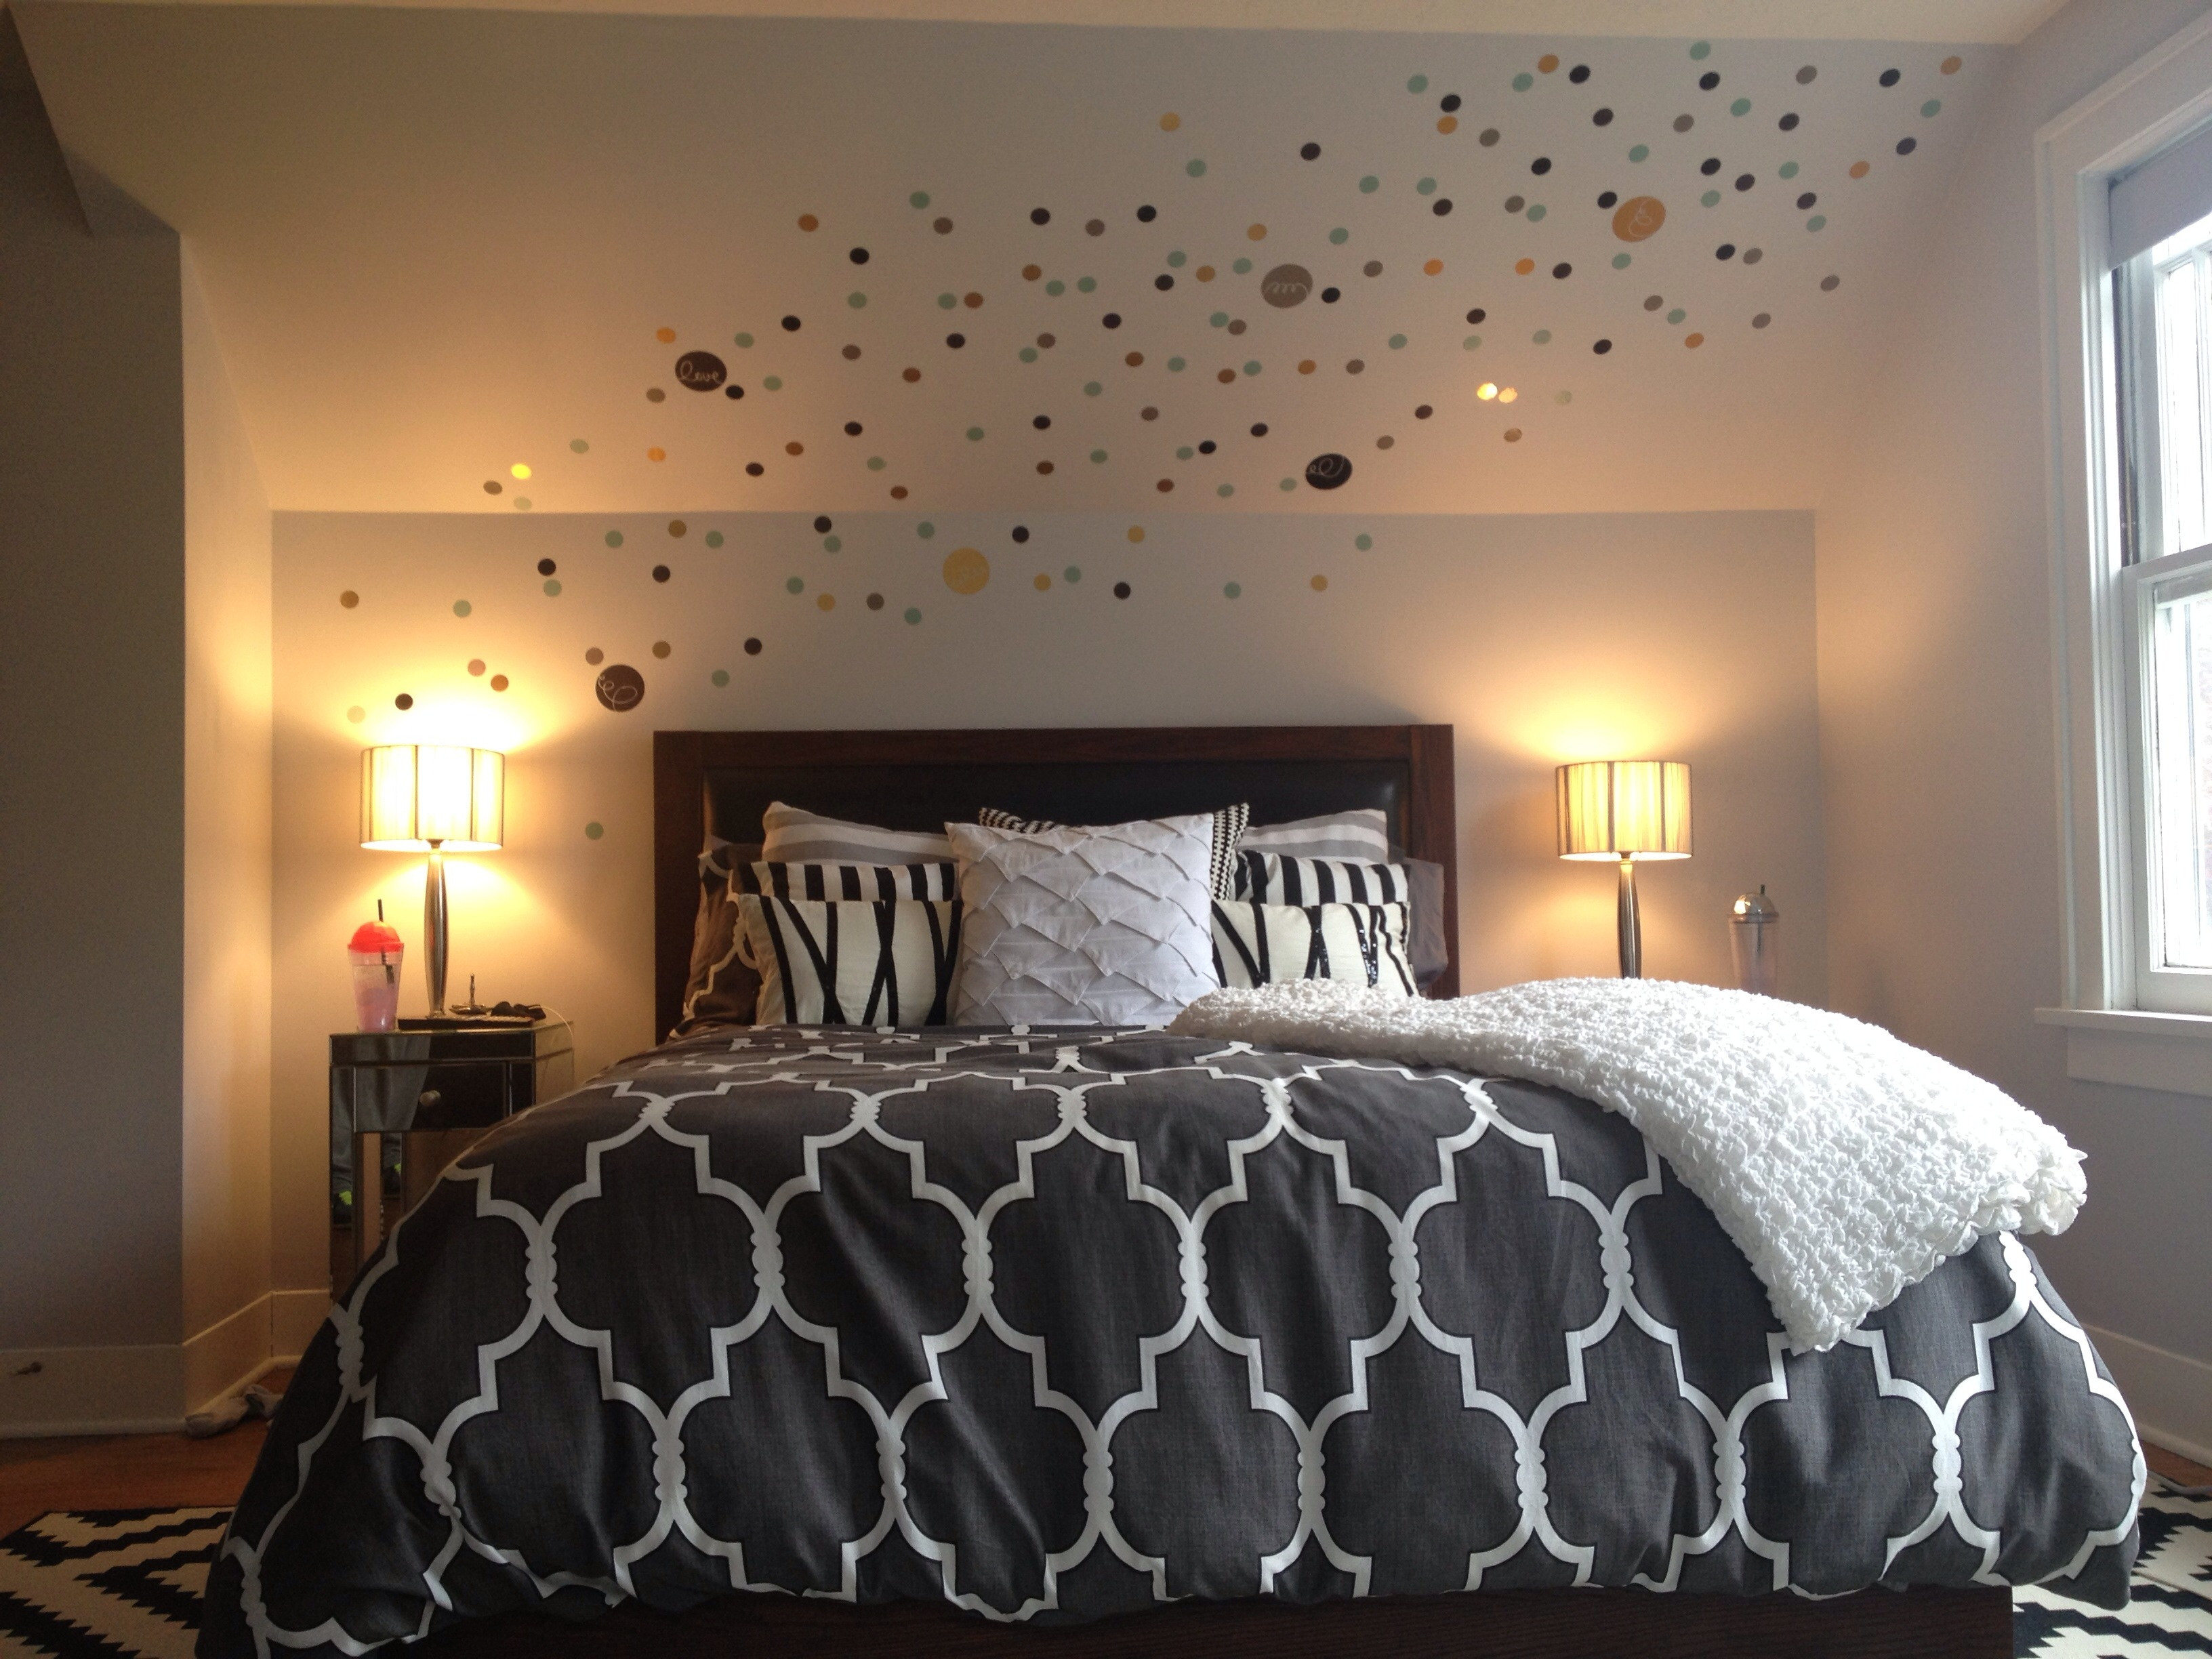 Best ideas about Bedroom Wall Decor . Save or Pin Wall Art Ideas For Bedroom Pinterest Now.